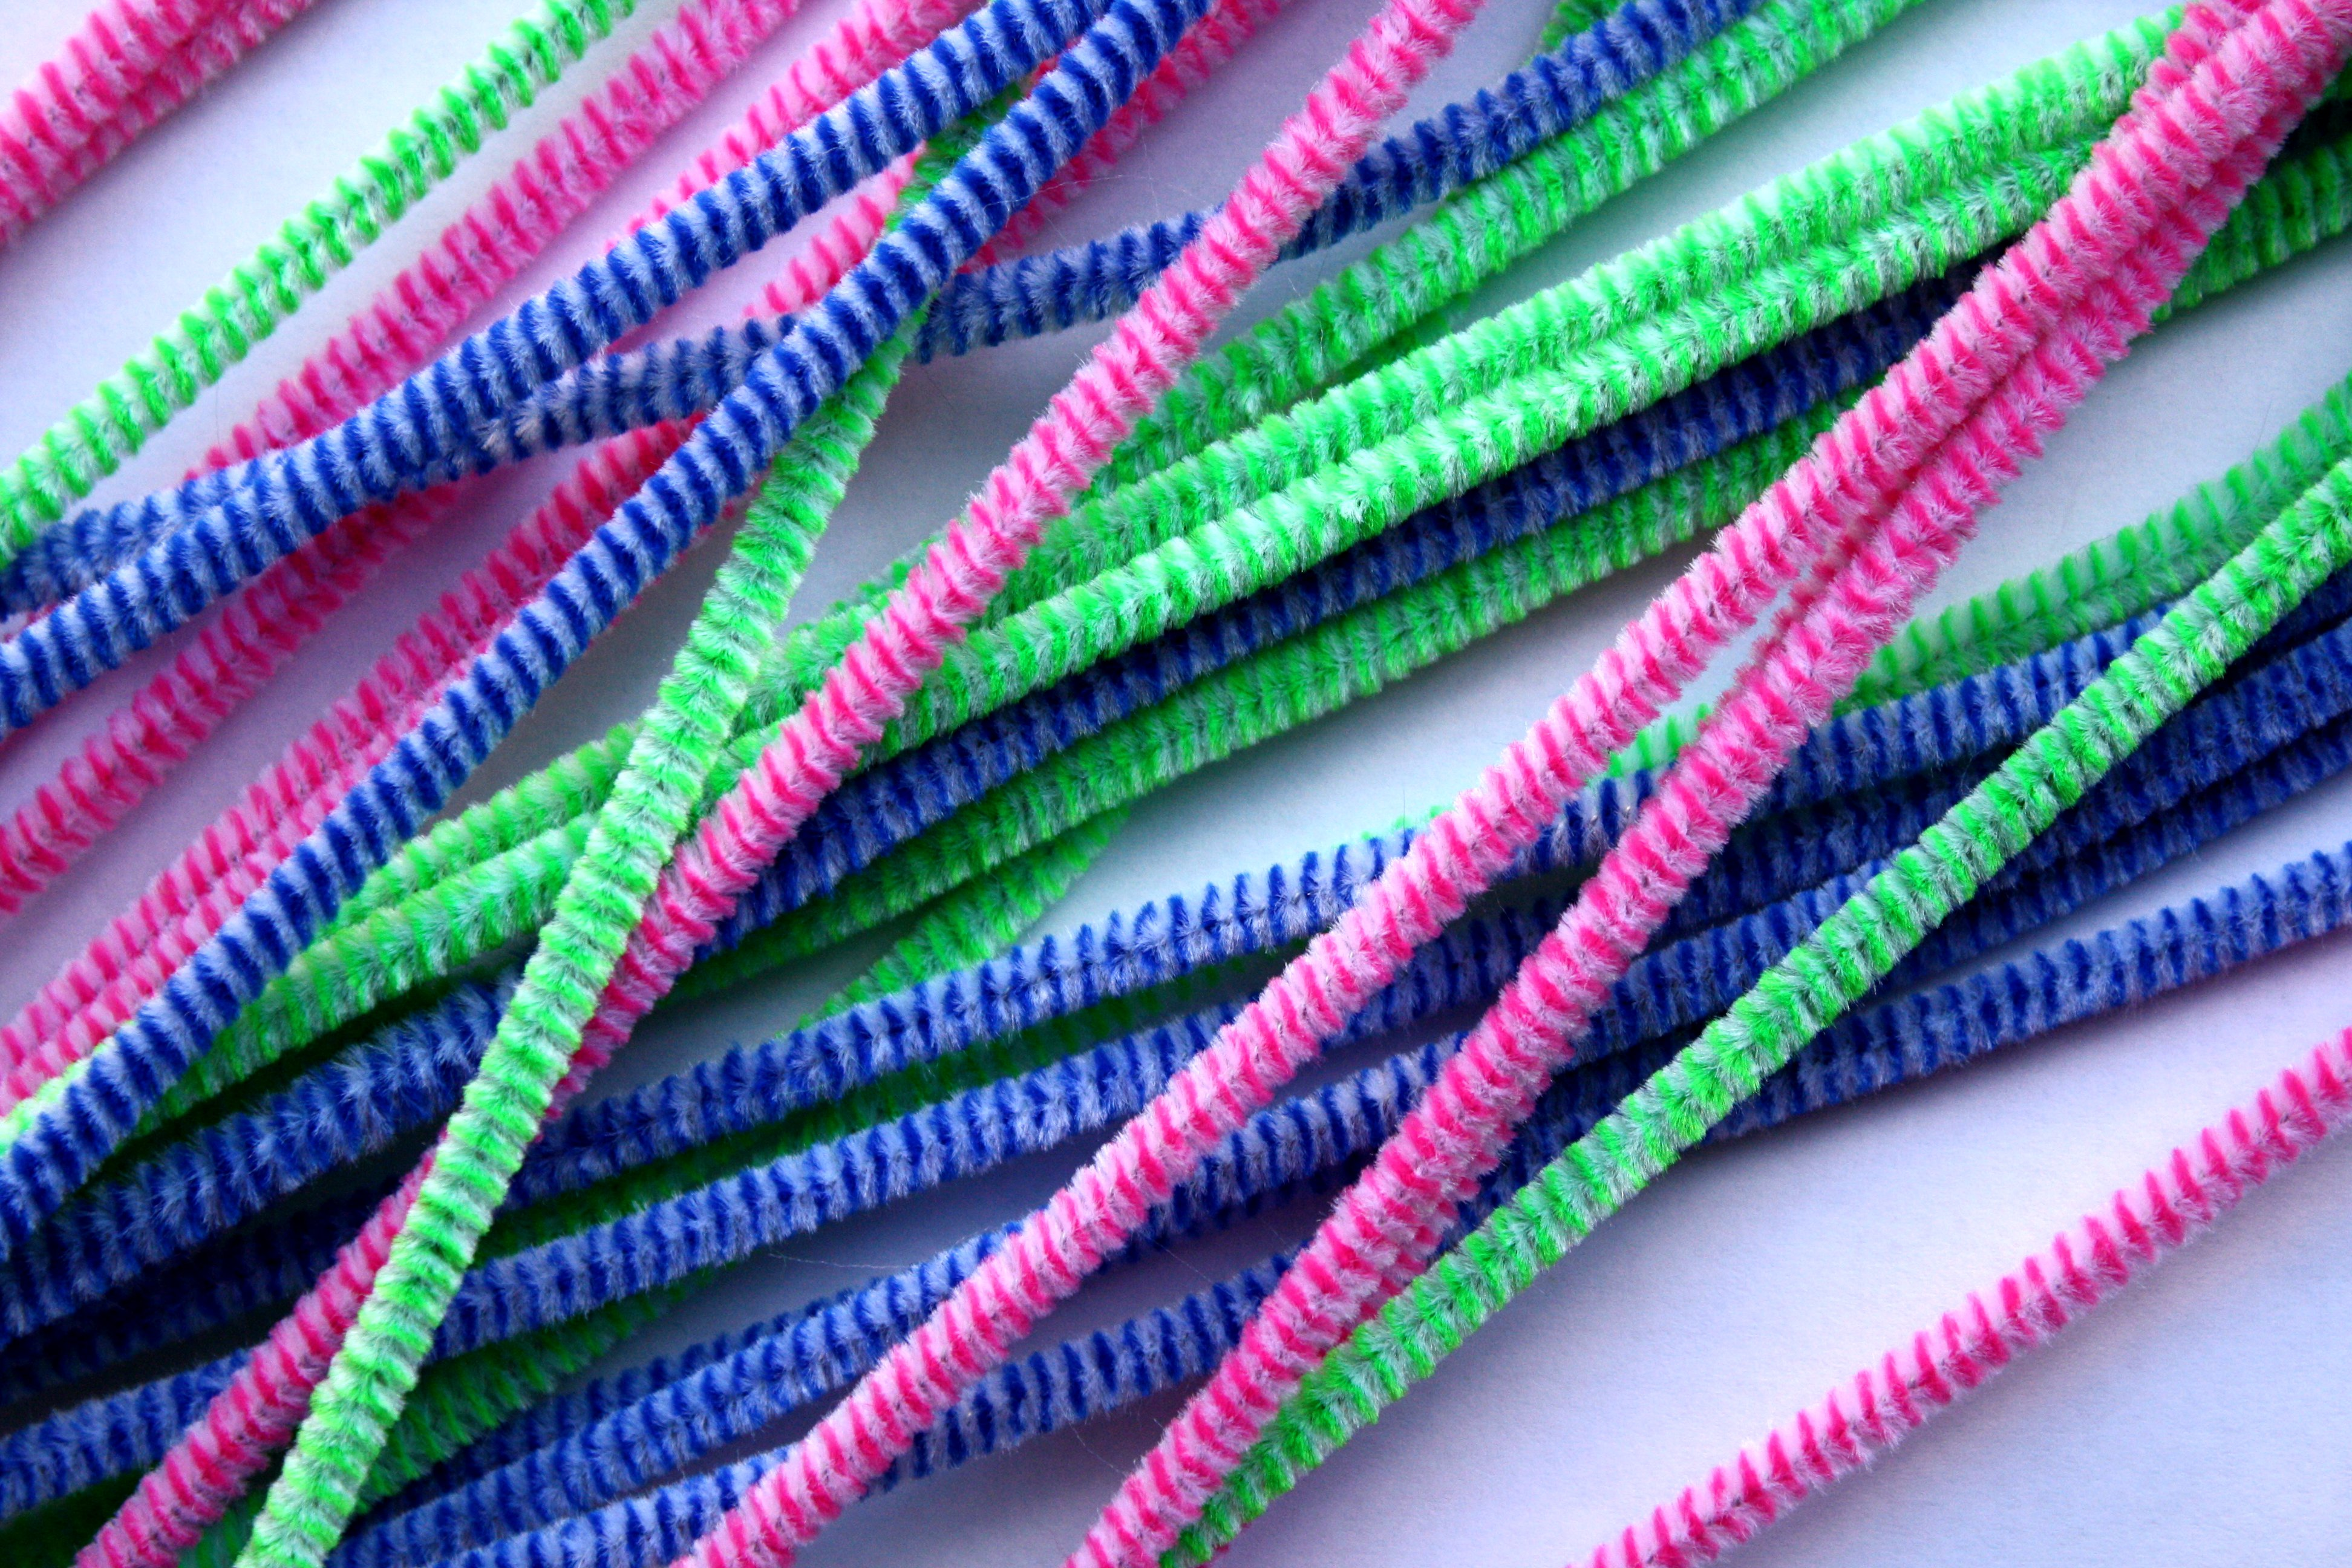 pipe cleaners pictures free photographs photos public domain